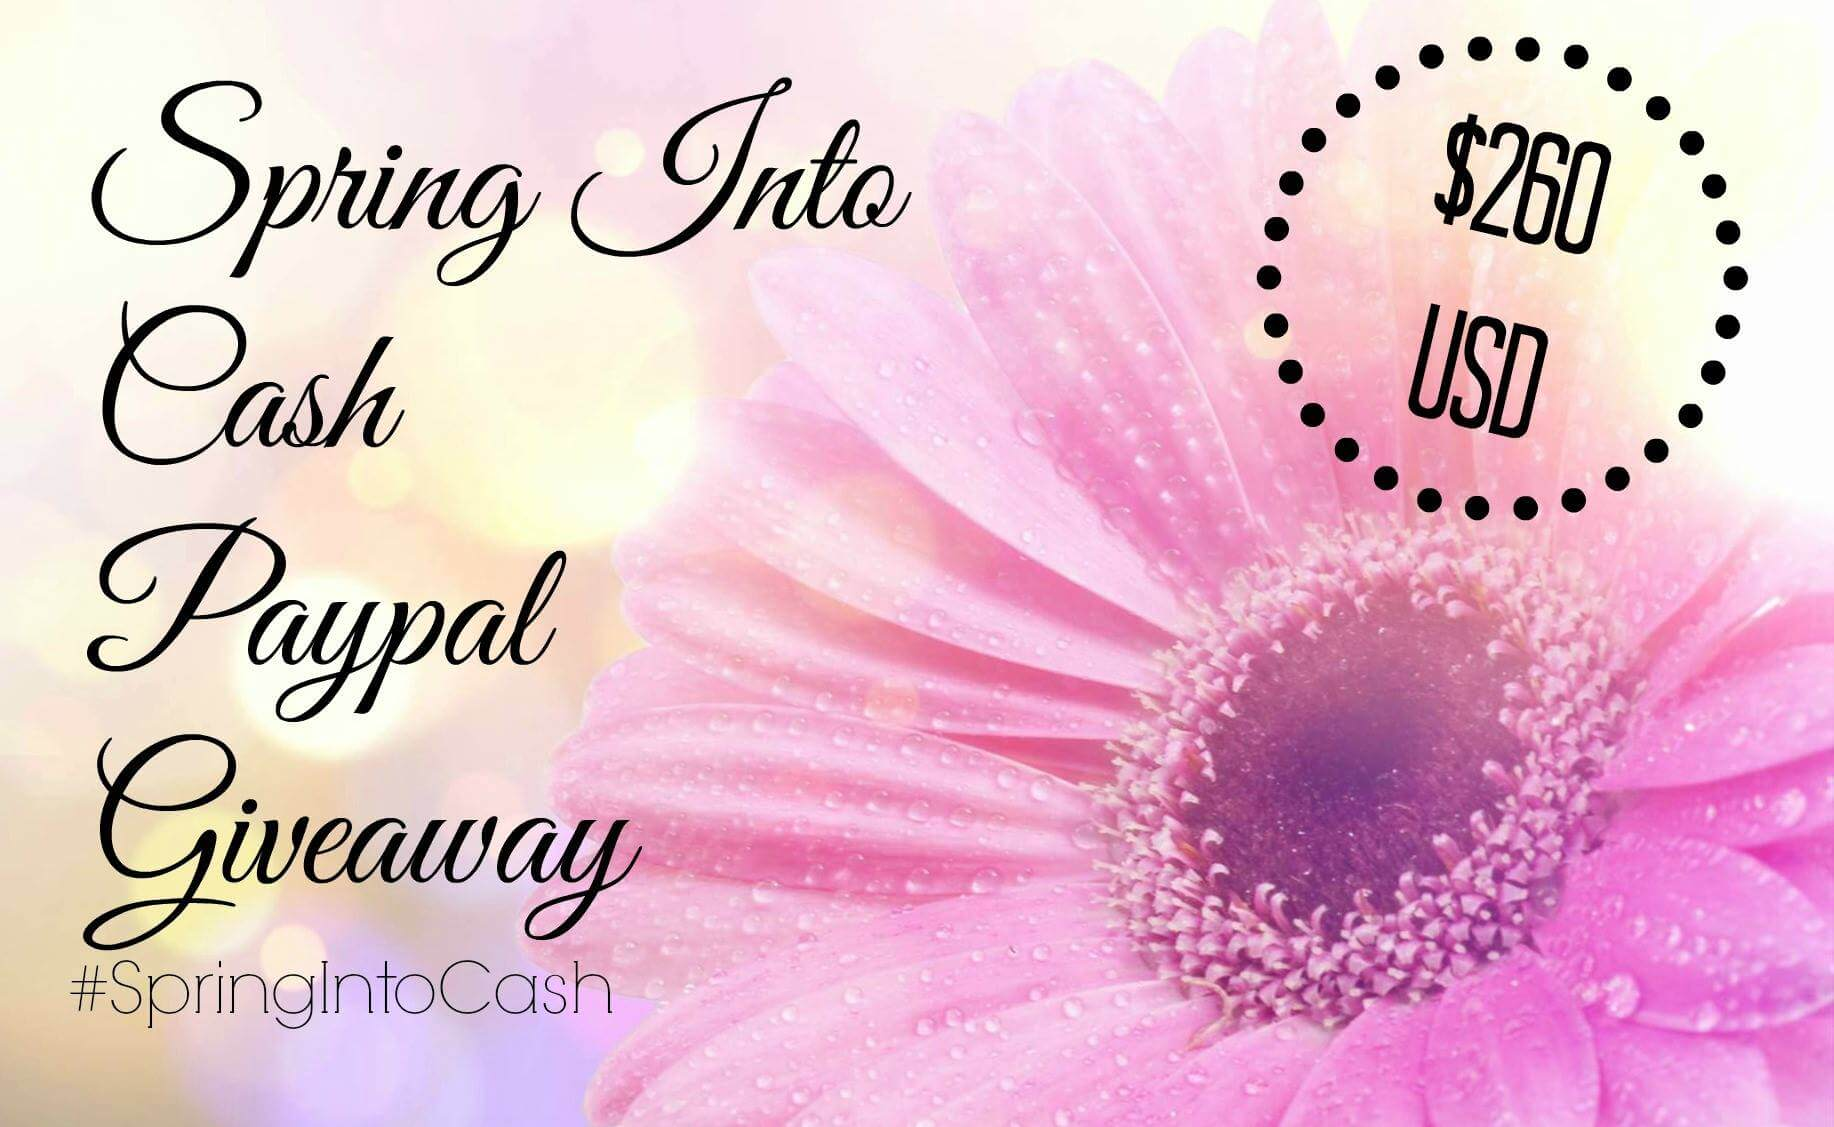 Giveaway - Win $260 - Ends May 2 2016 - Open Worldwide